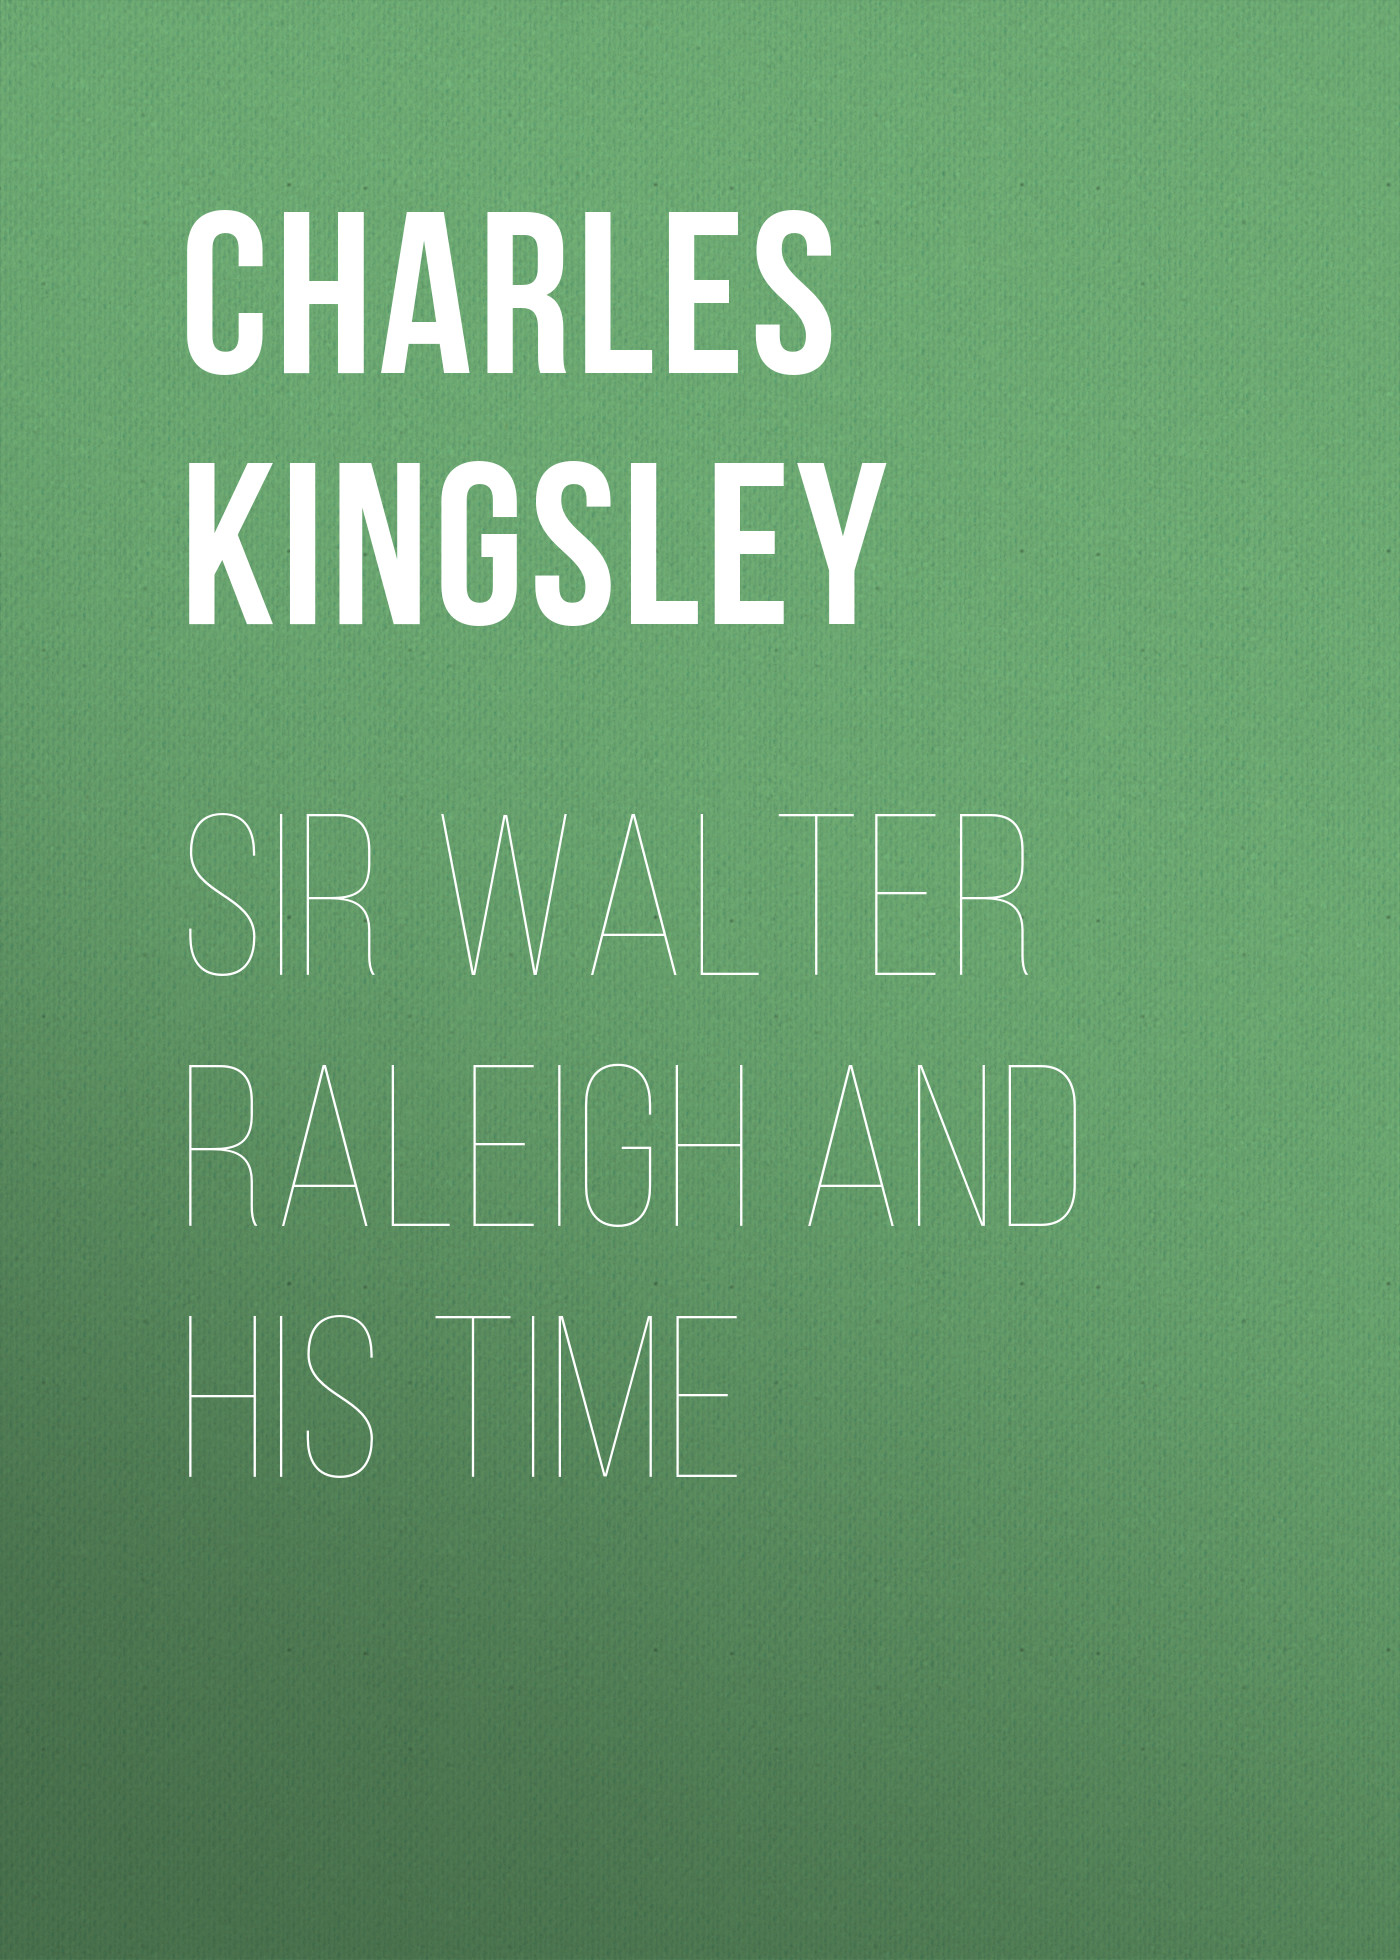 Charles Kingsley Sir Walter Raleigh and His Time charles kingsley charles kingsley his letters and memories of his life volume 2